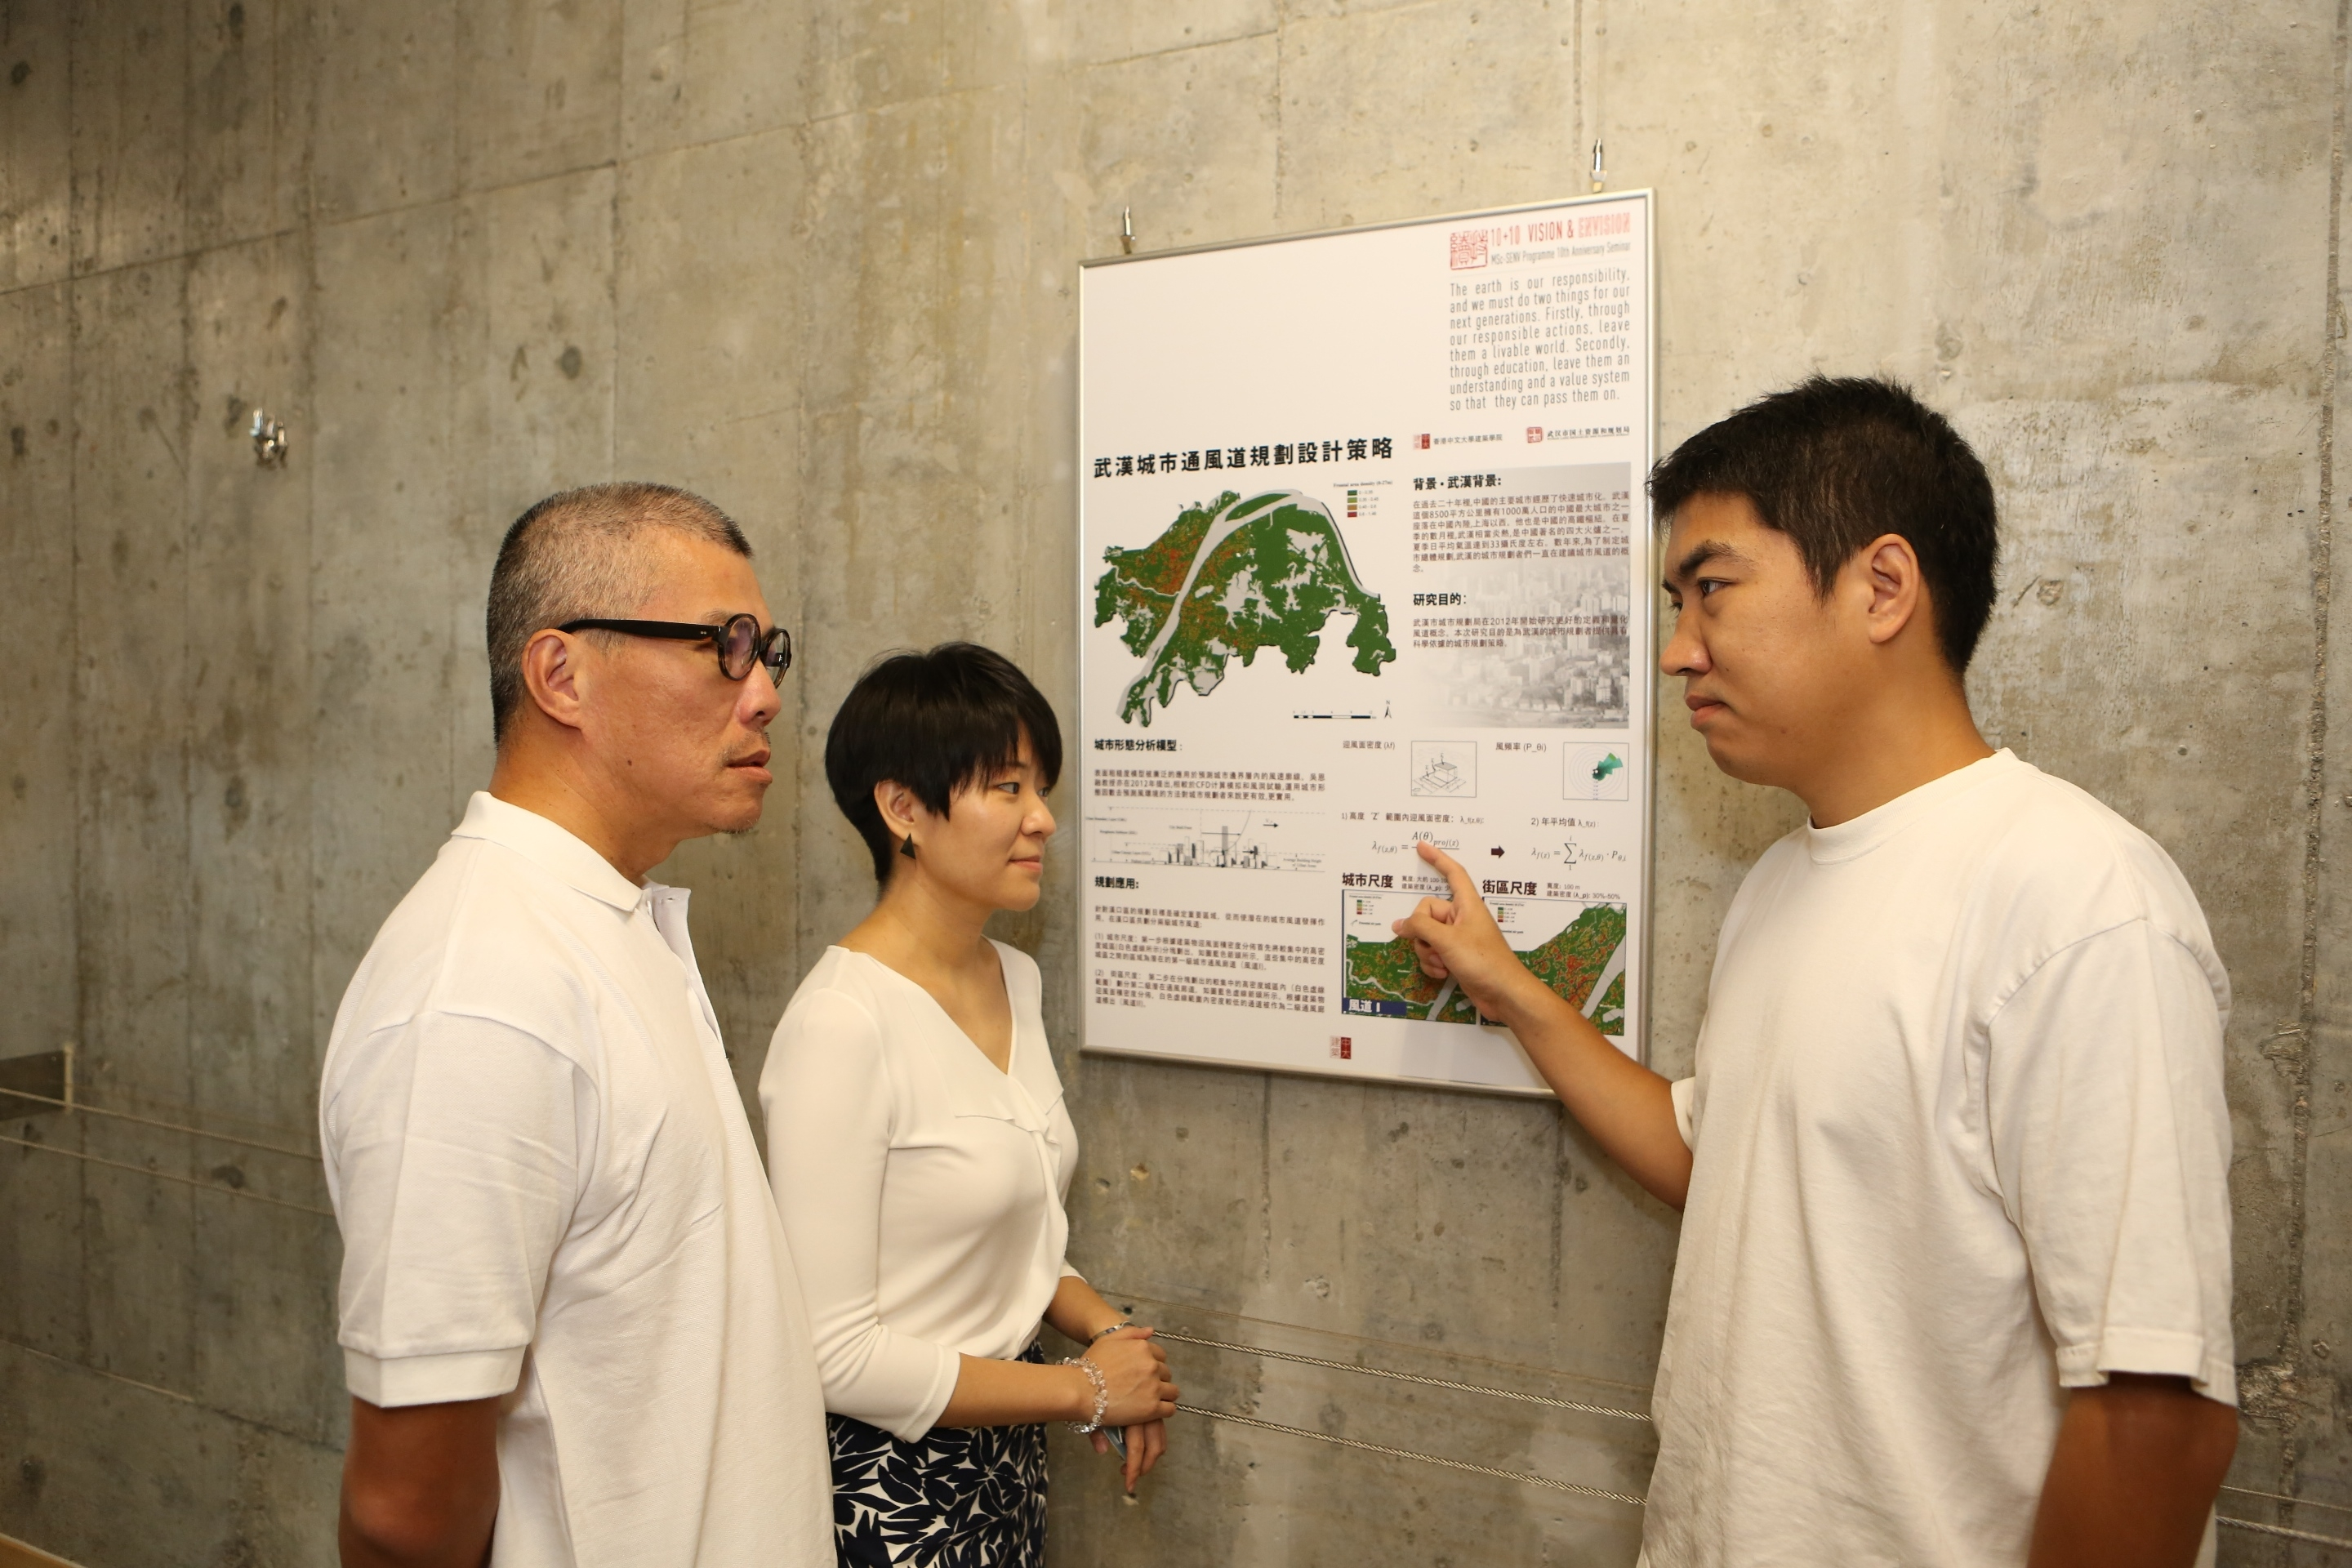 Prof. Edward Ng Yan Yung (left), Prof. Ren Chao (middle) and Dr. Yuan Chao (right) discuss on air ventilation of Wuhan.